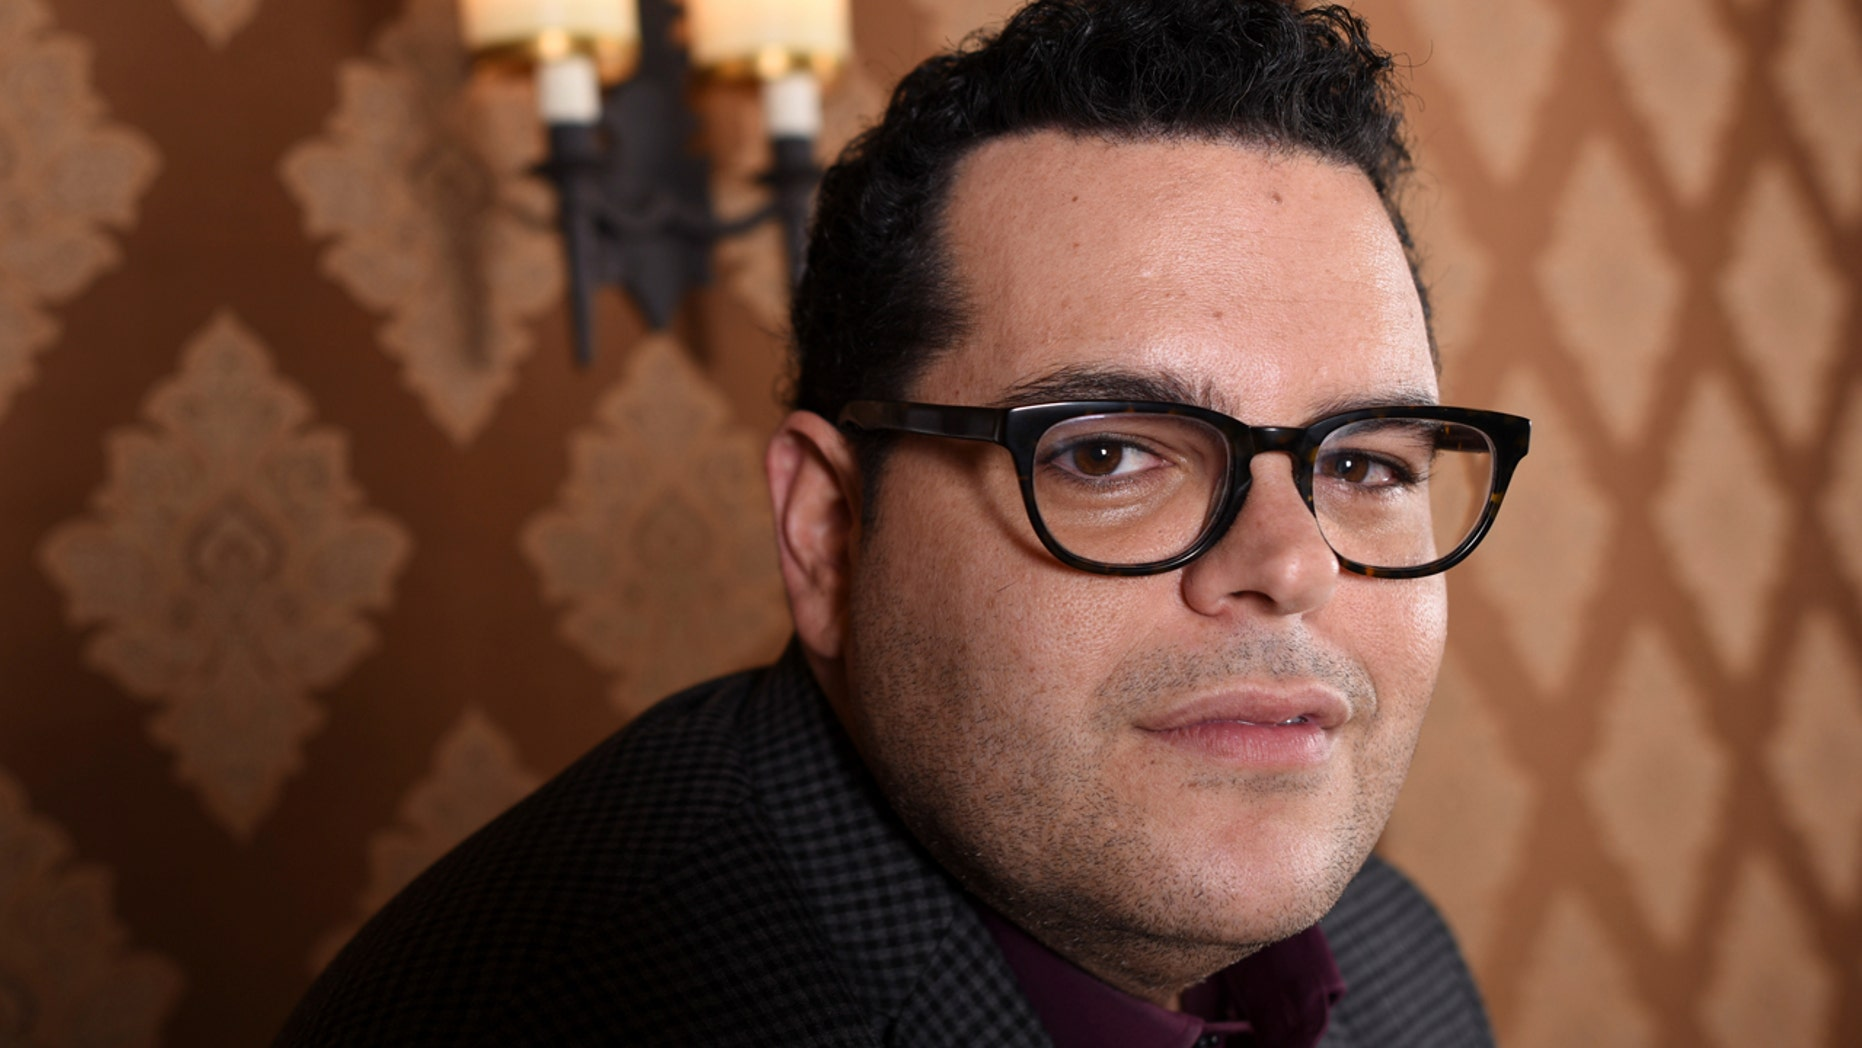 """Beauty and the Beast"" cast member Josh Gad is photographed at the Montage hotel in Beverly Hills, California, U.S. March 5, 2017. REUTERS/Phil McCarten - RTS11KHG"